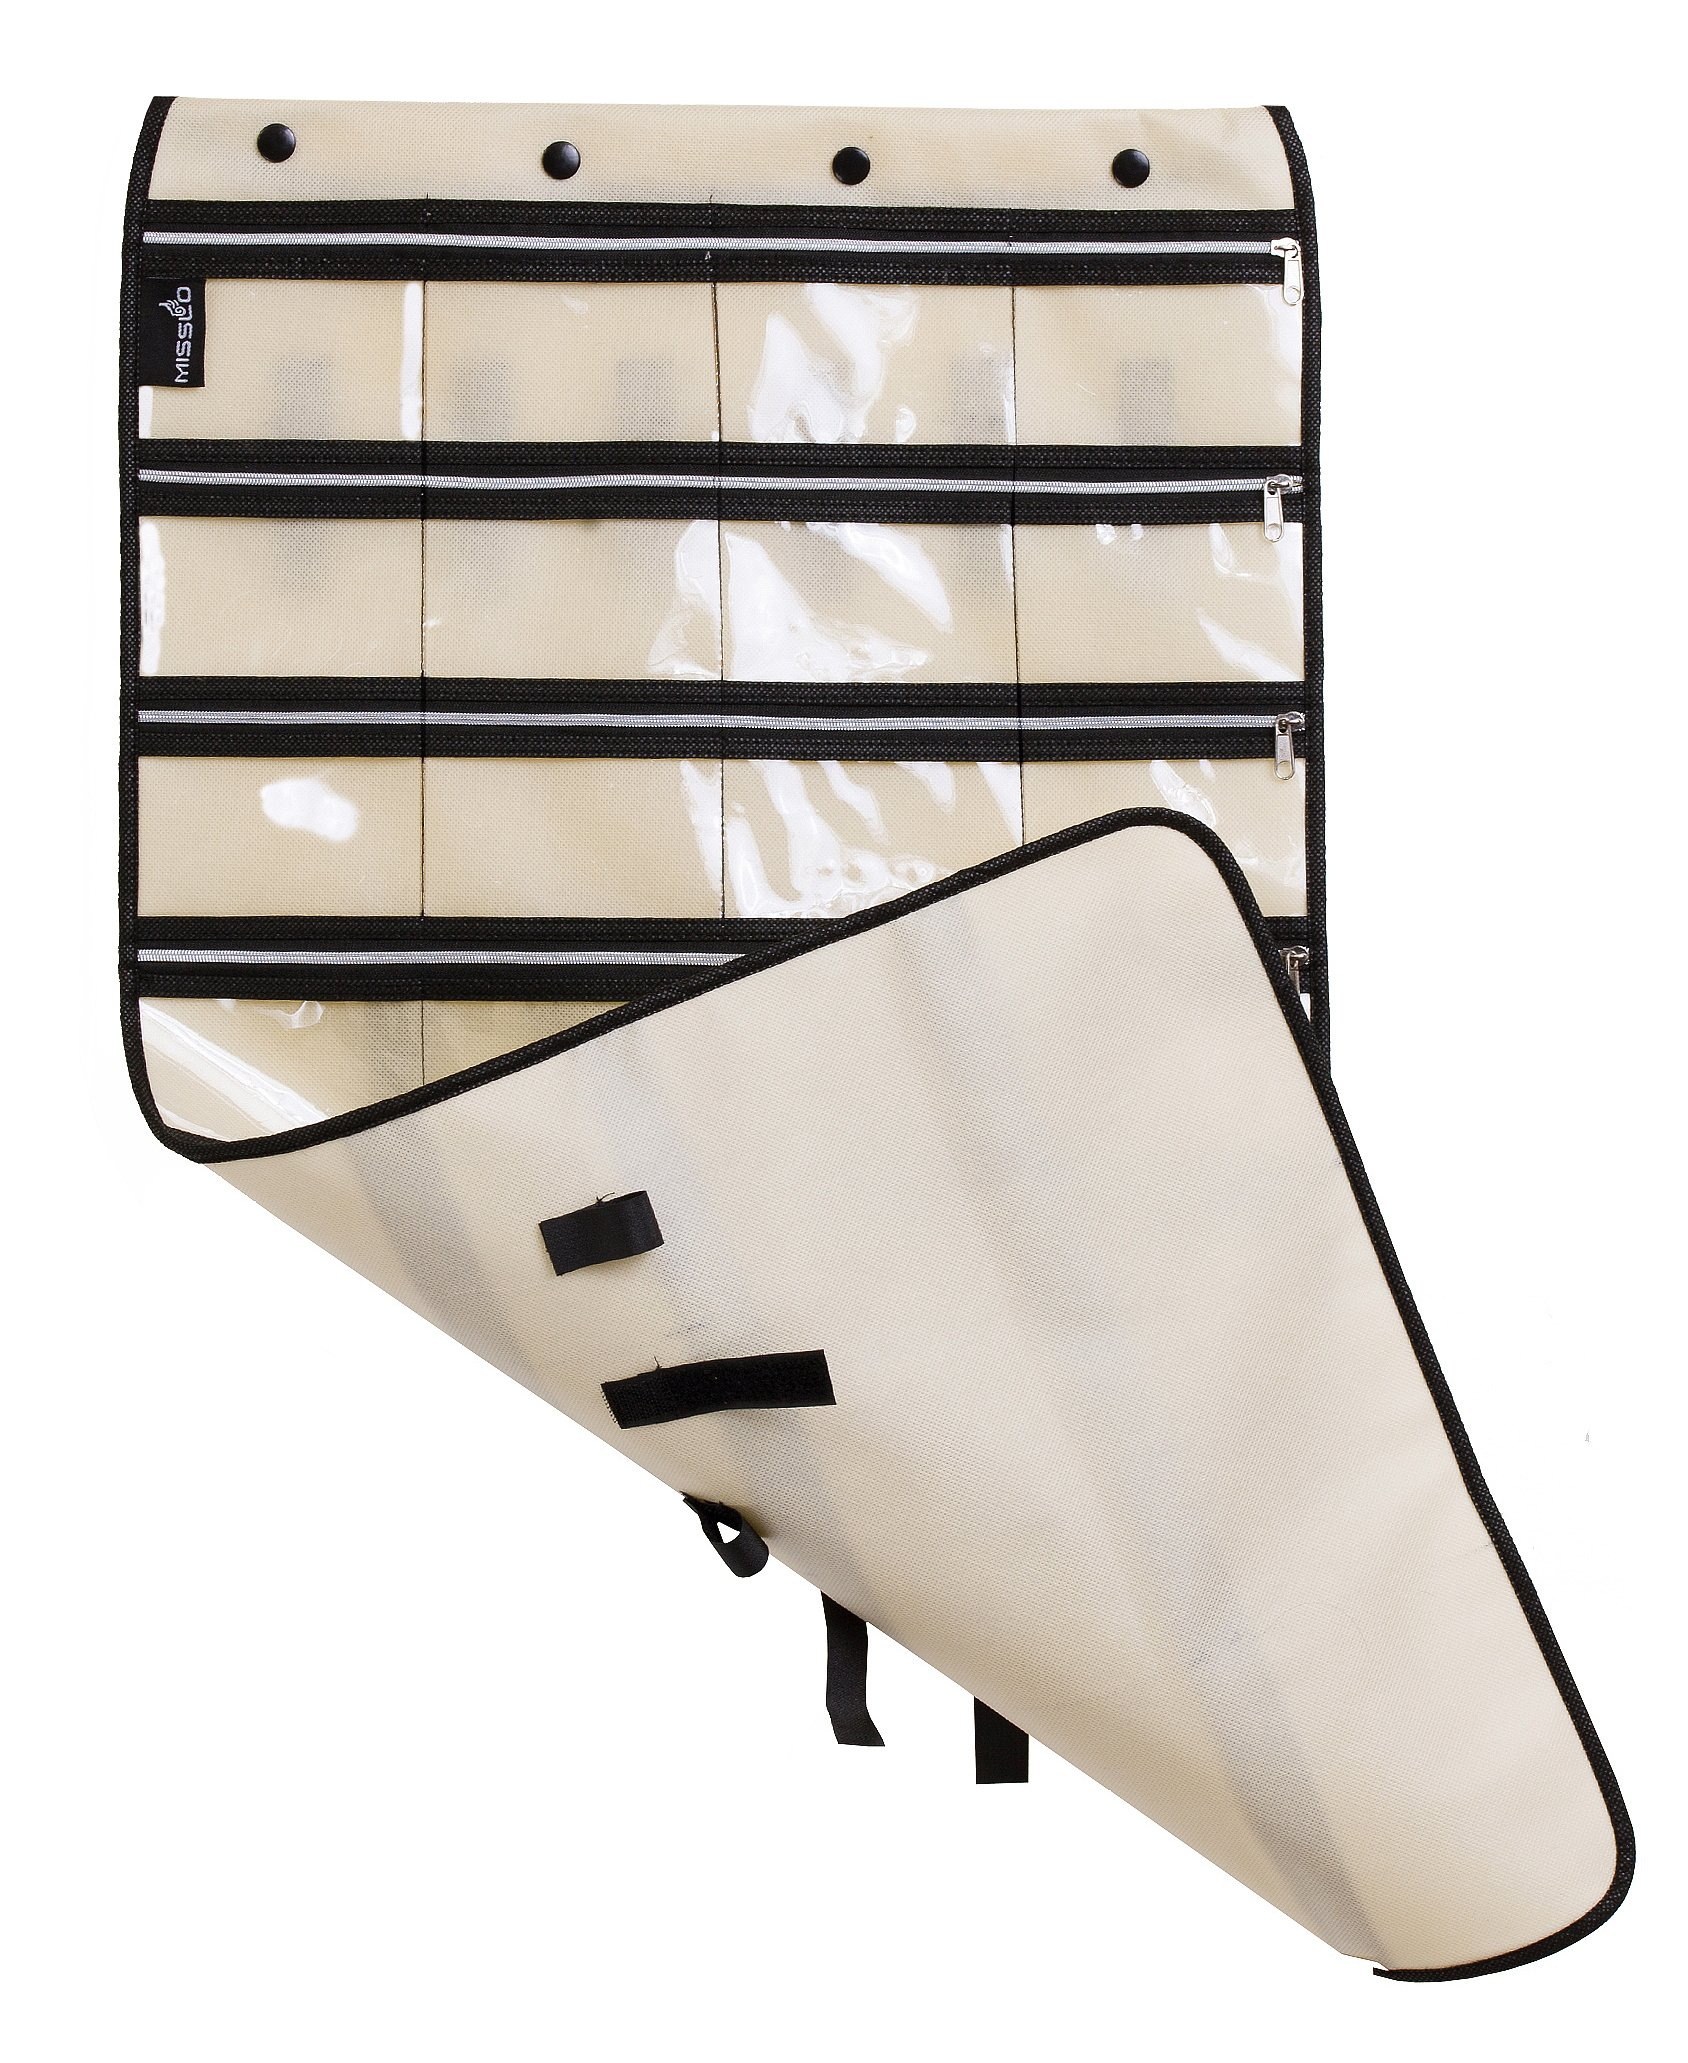 MISSLO Zippered Jewelry Organizer Hanging For Travel Home Storage 30 Zippered Pockets 17 Loops, Beige by MISSLO (Image #1)